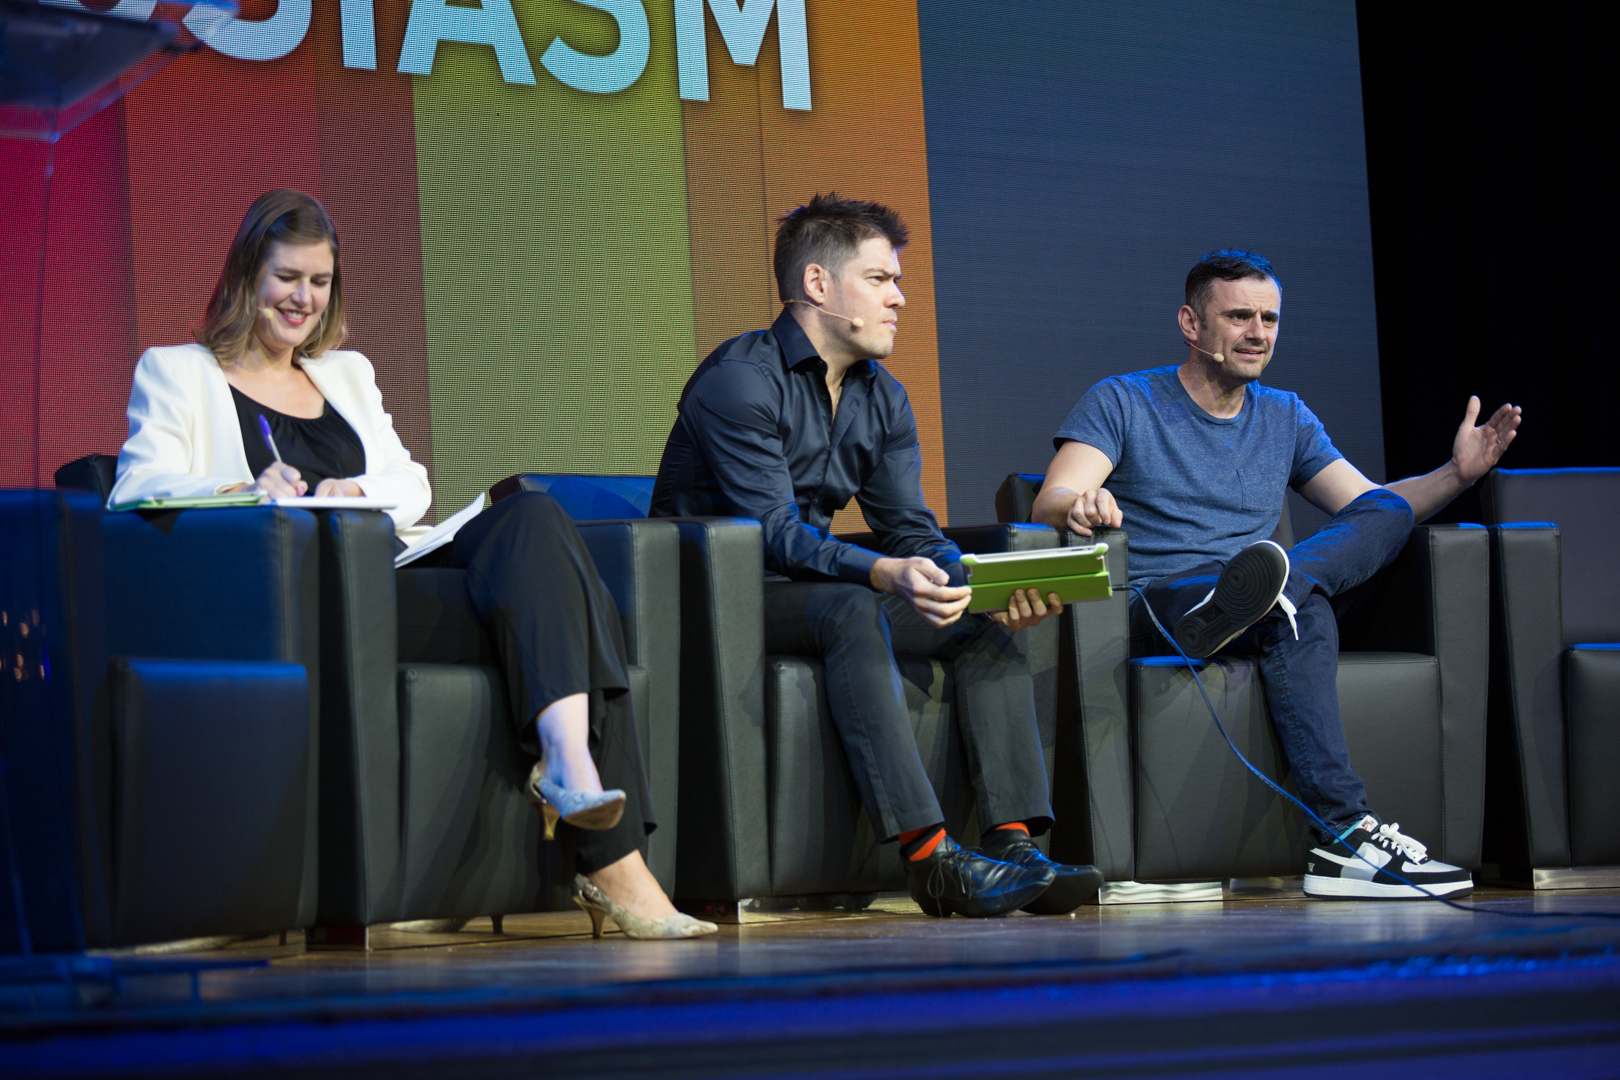 From left to right: co-hosts Sara Critchfield,Founding Editorial Director of Upworthy and Scott Bales,Global Futurist and Digital Strategist of Innovation Labs Asia interviewing the incredibly blunt and though-provoking Gary Vaynerchuk of Vayner Media.